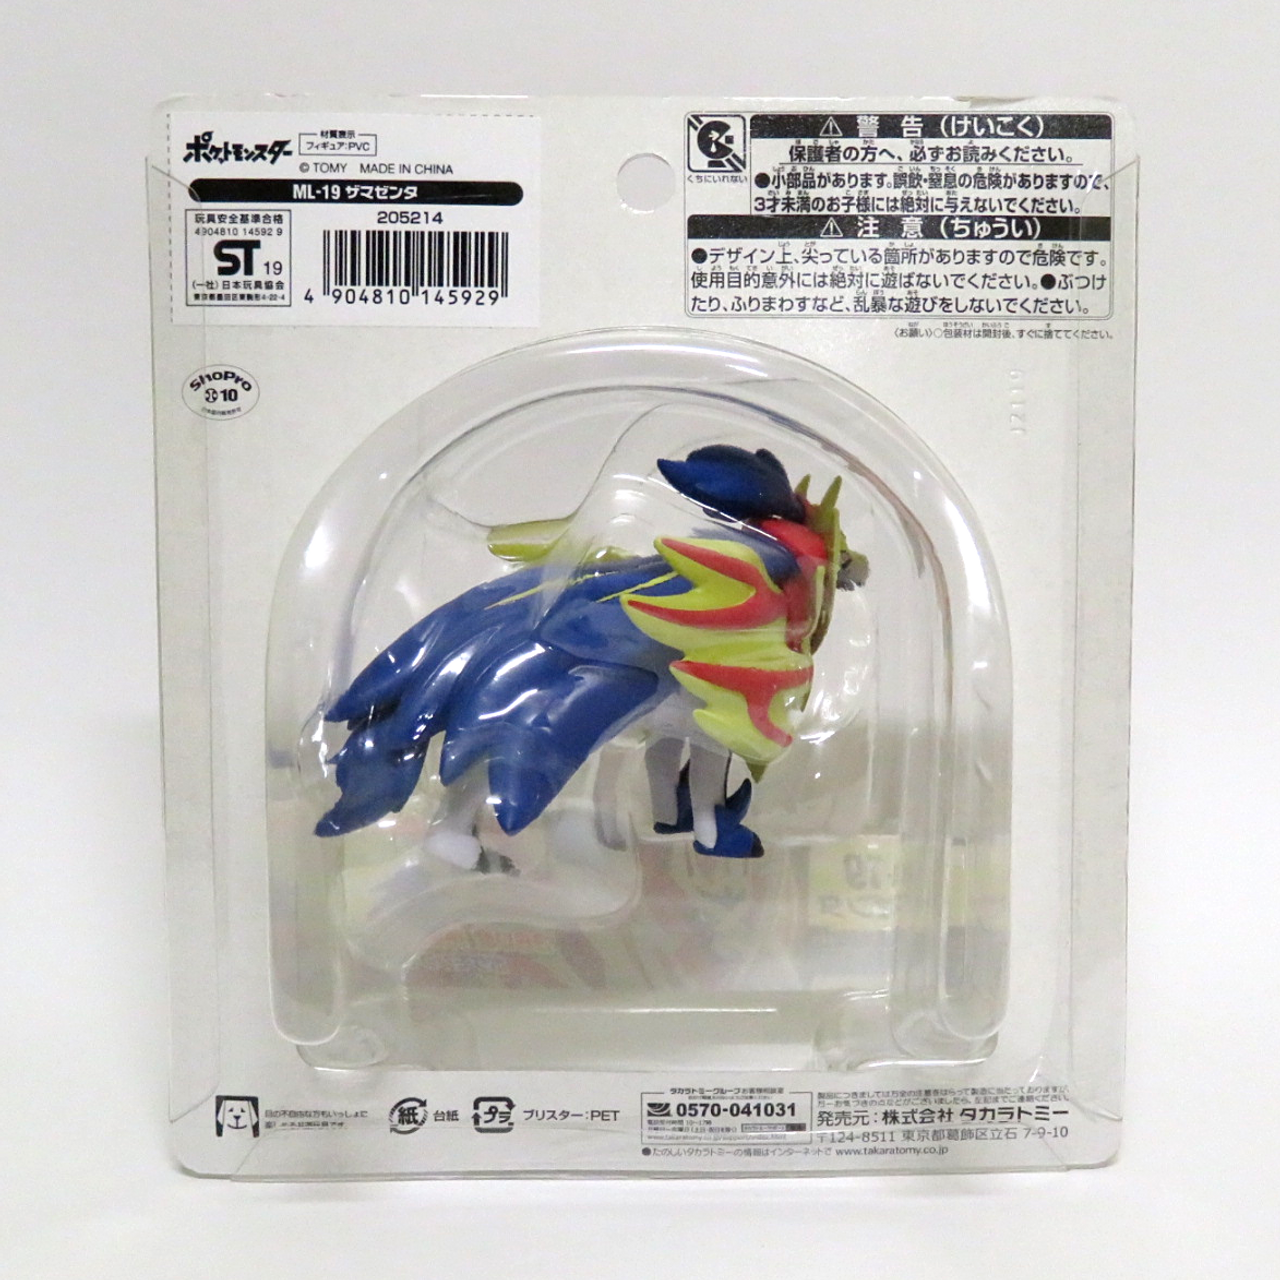 TAKARA TOMY Pokemon Moncolle EX ML-19 Zamazenta Figure Japan import NEW